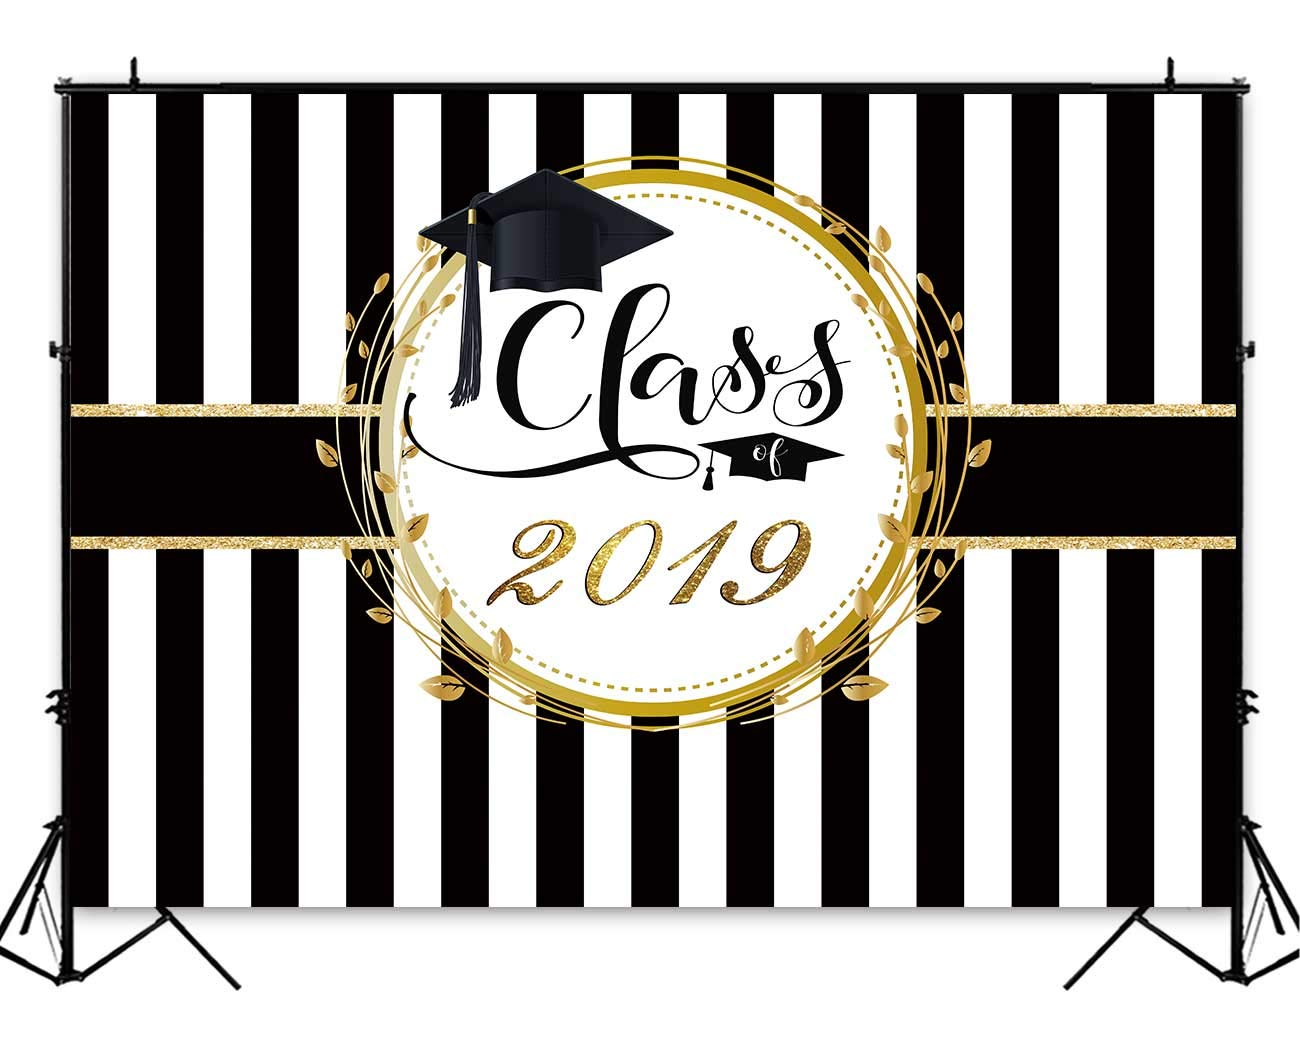 Funnytree 8x6ft Durable Fabric Graduation Party Backdrop No Wrinkles Class of 2019 Black and White Stripes Photography Background Congrats Grad Prom Decor Photo Studio Booth Props Cake Table Banner